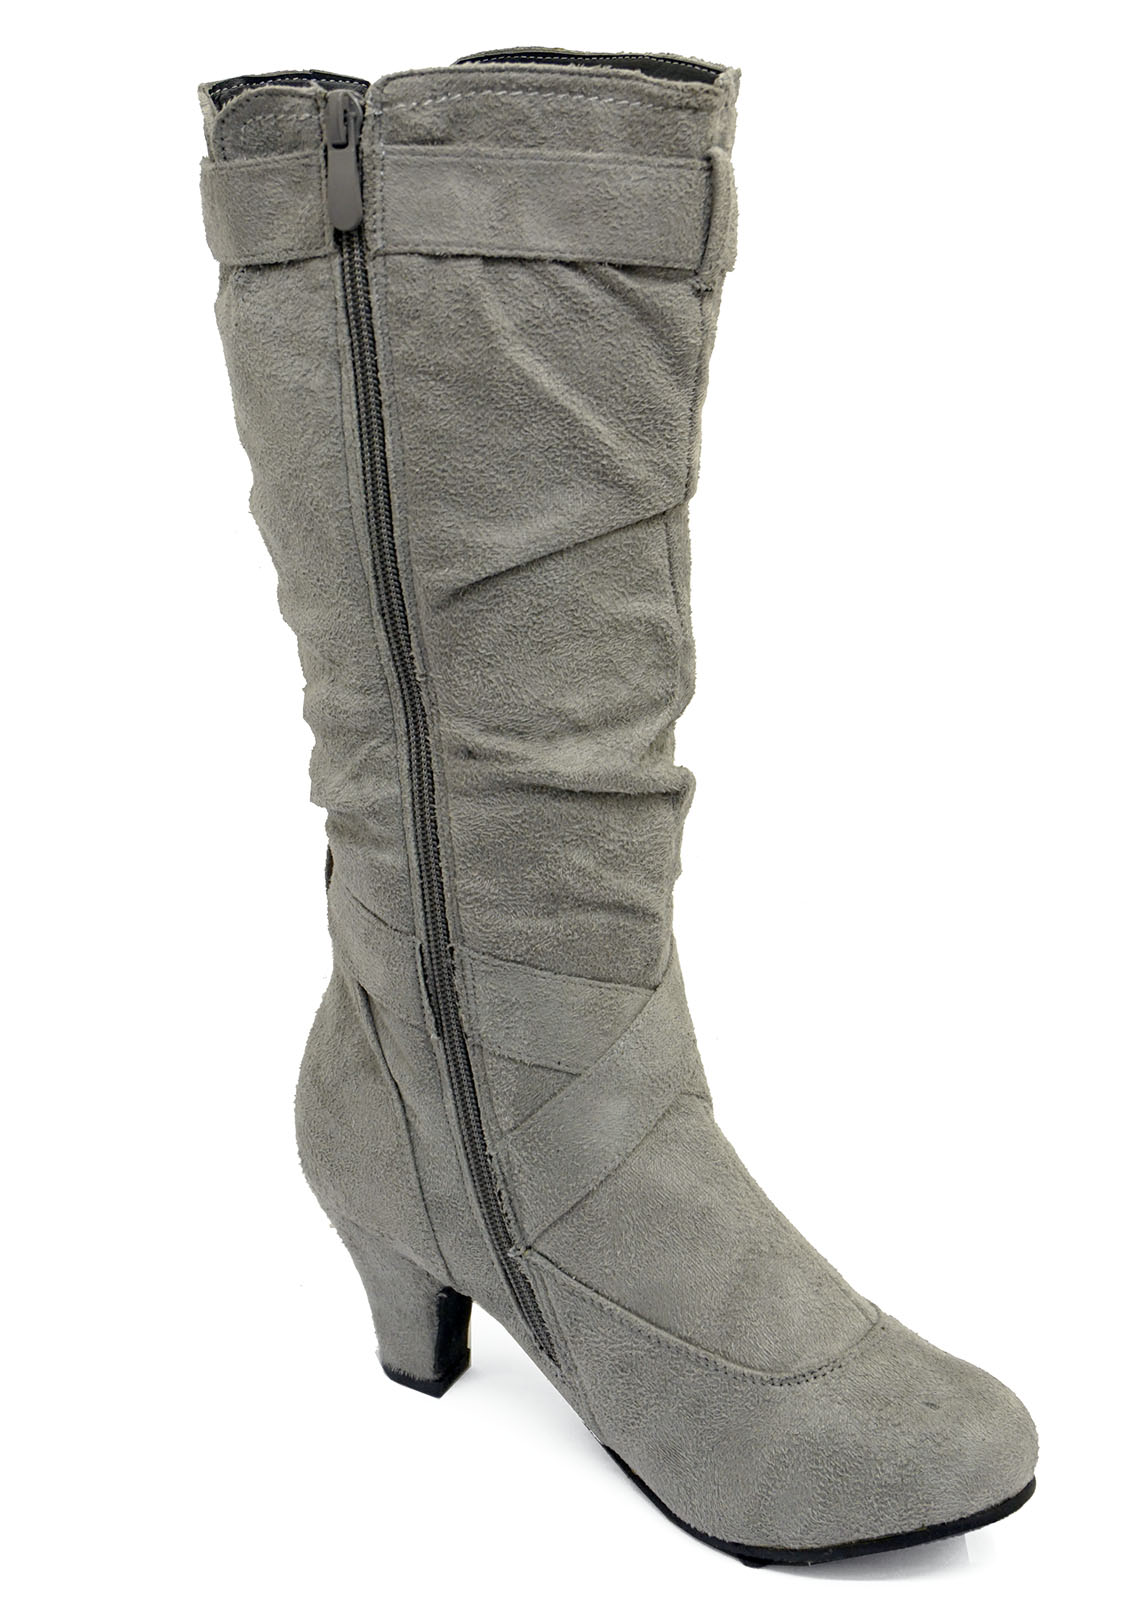 LADIES-GREY-ZIP-UP-BIKER-SLOUCH-RUCHED-TALL-KNEE-CALF-LOW-HEEL-BOOTS-SHOES-4-10 thumbnail 25